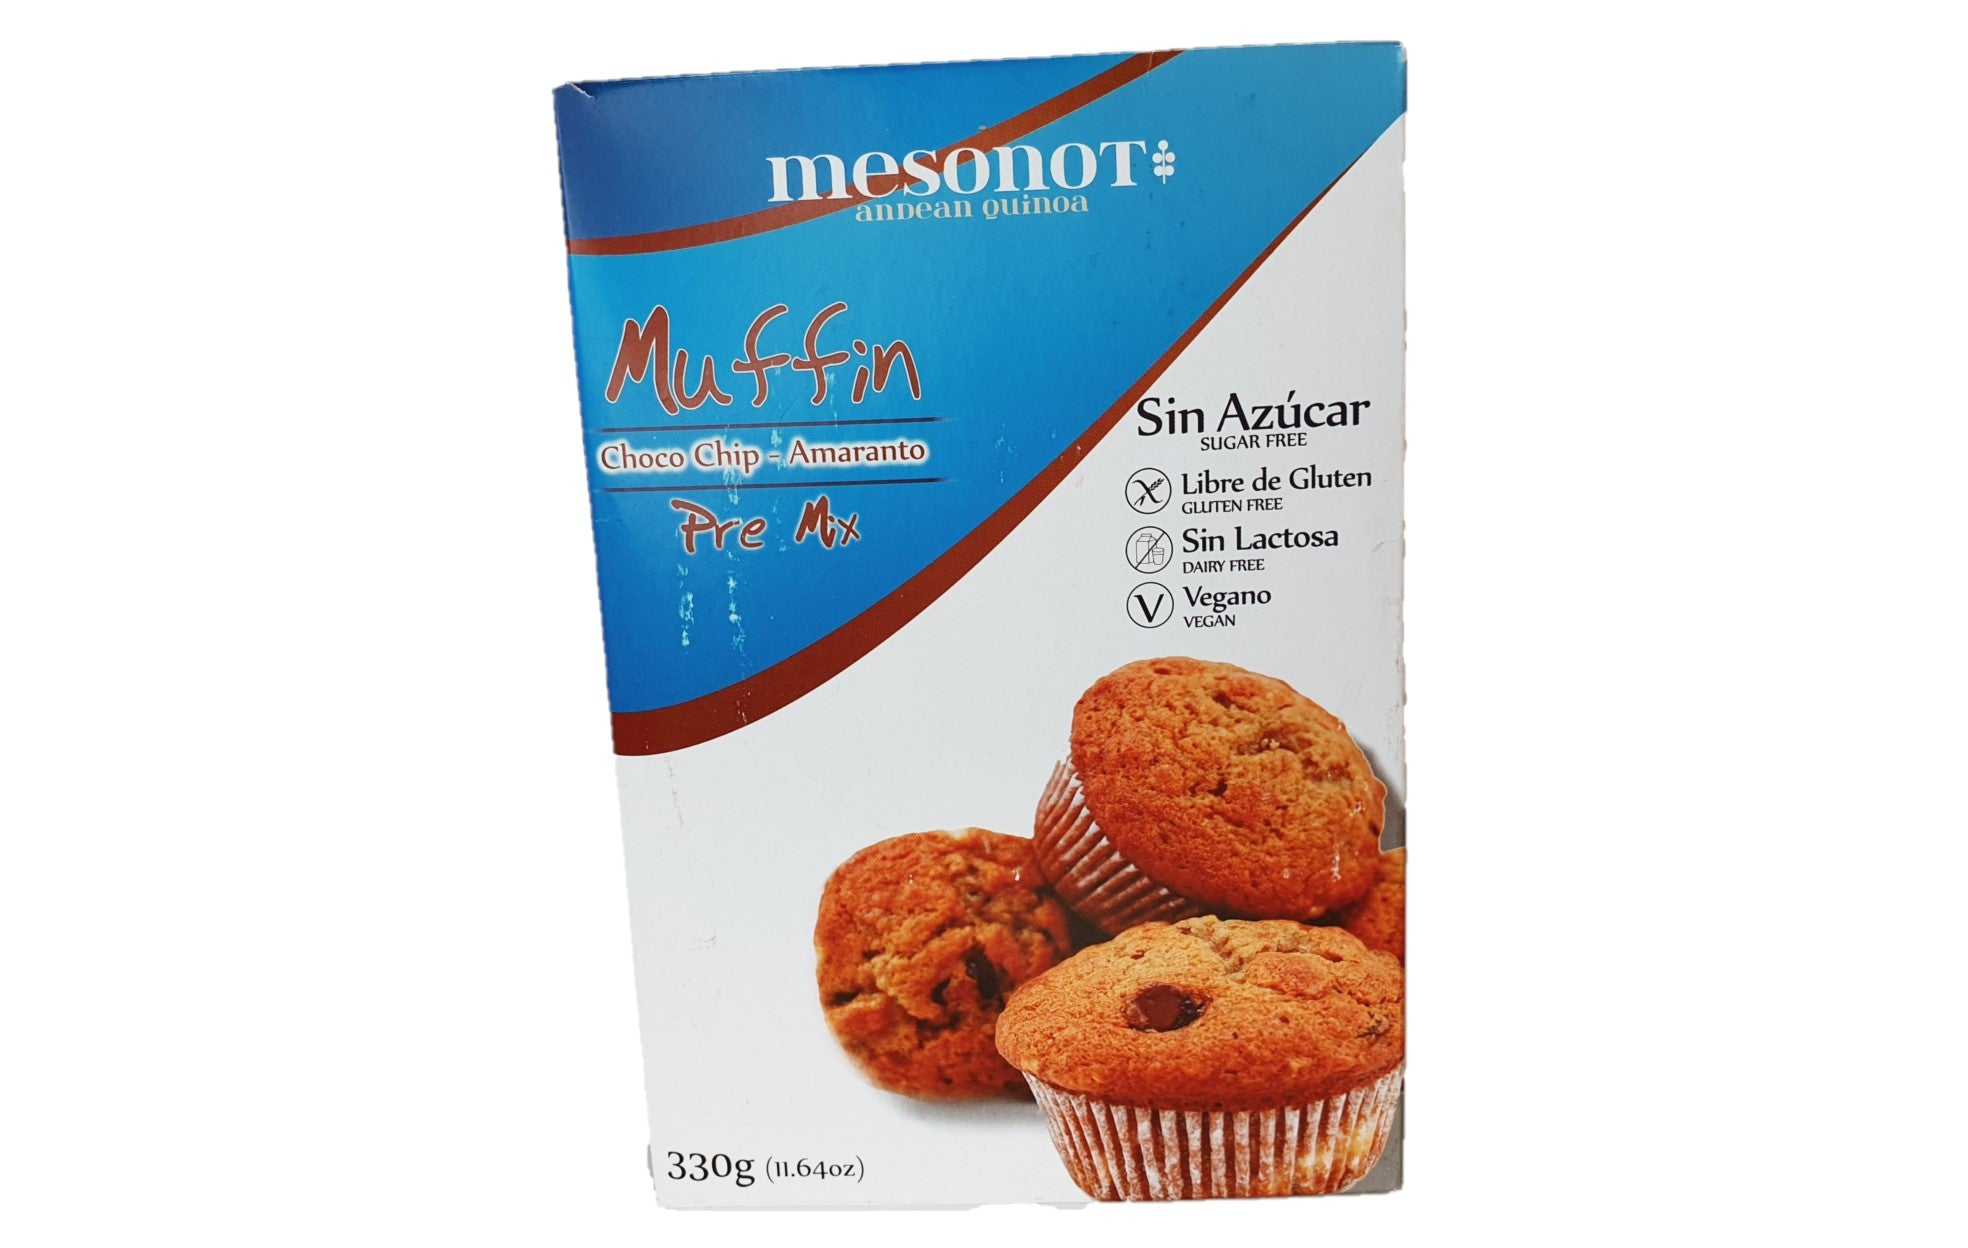 PRE MIX - sugar free ( muffins amaranto con chips chocolate)